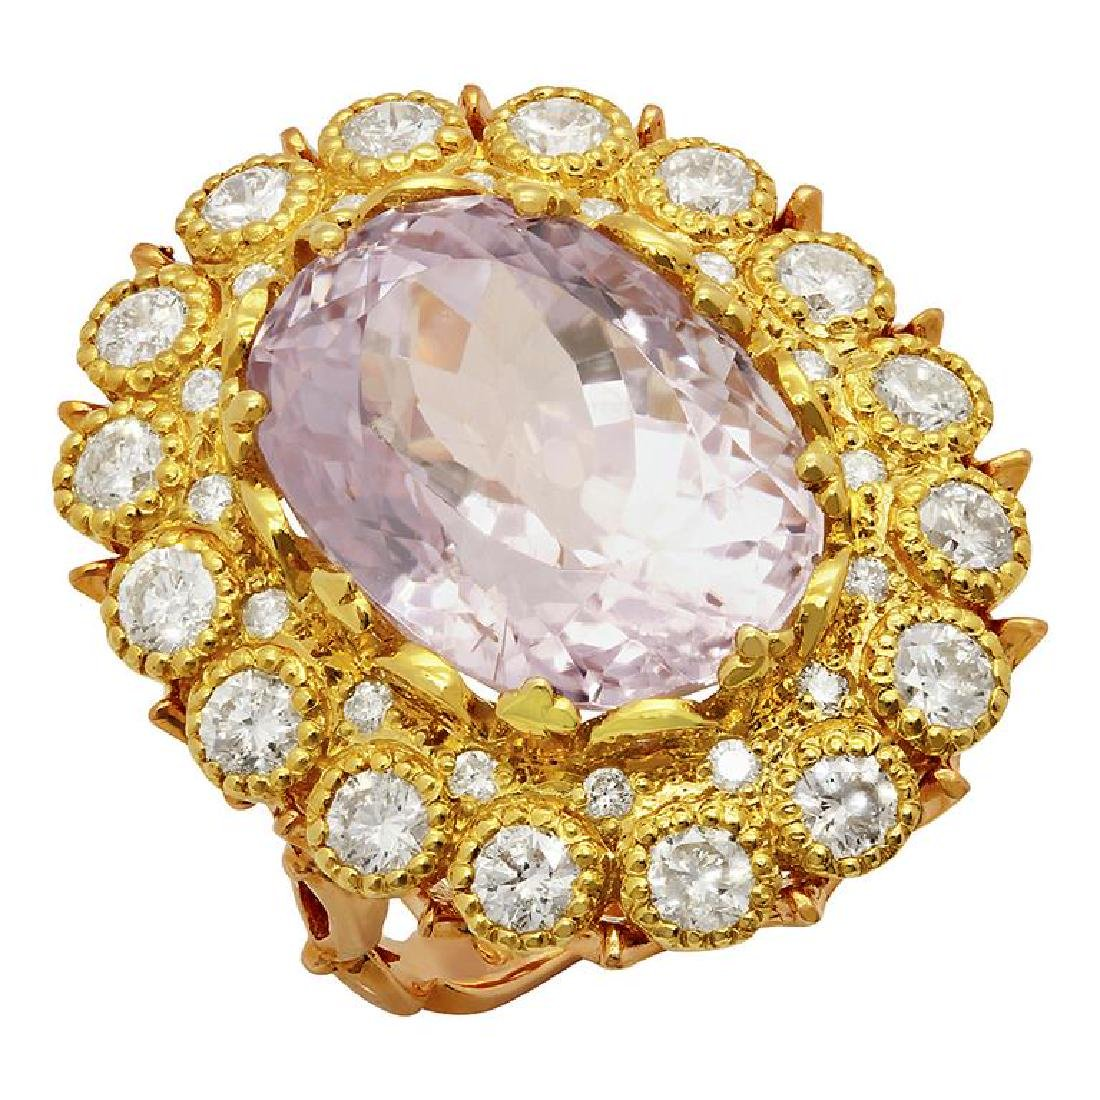 14k Yellow & Rose Gold 19.86ct Kunzite 2.84ct Diamond